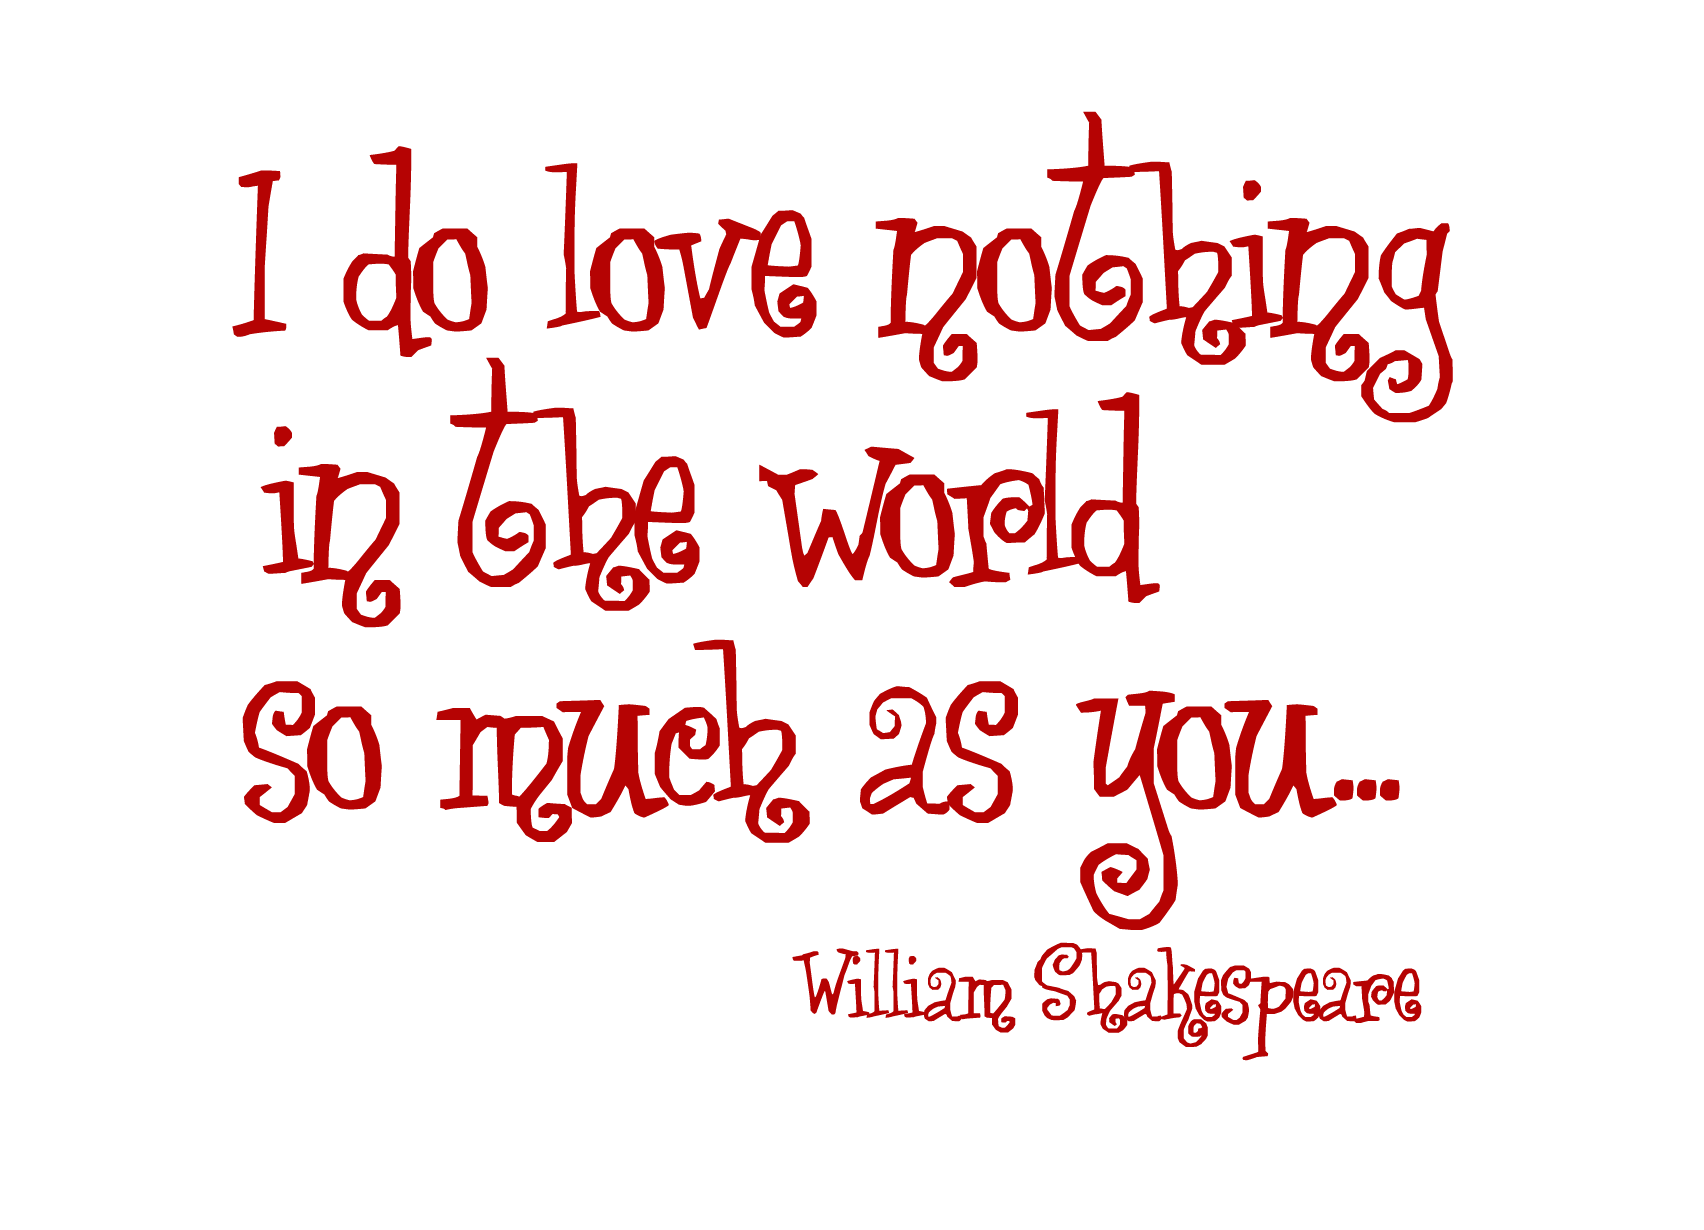 Love Quotes By Shakespeare 20 High Resolution Wallpaper Images, Photos, Reviews